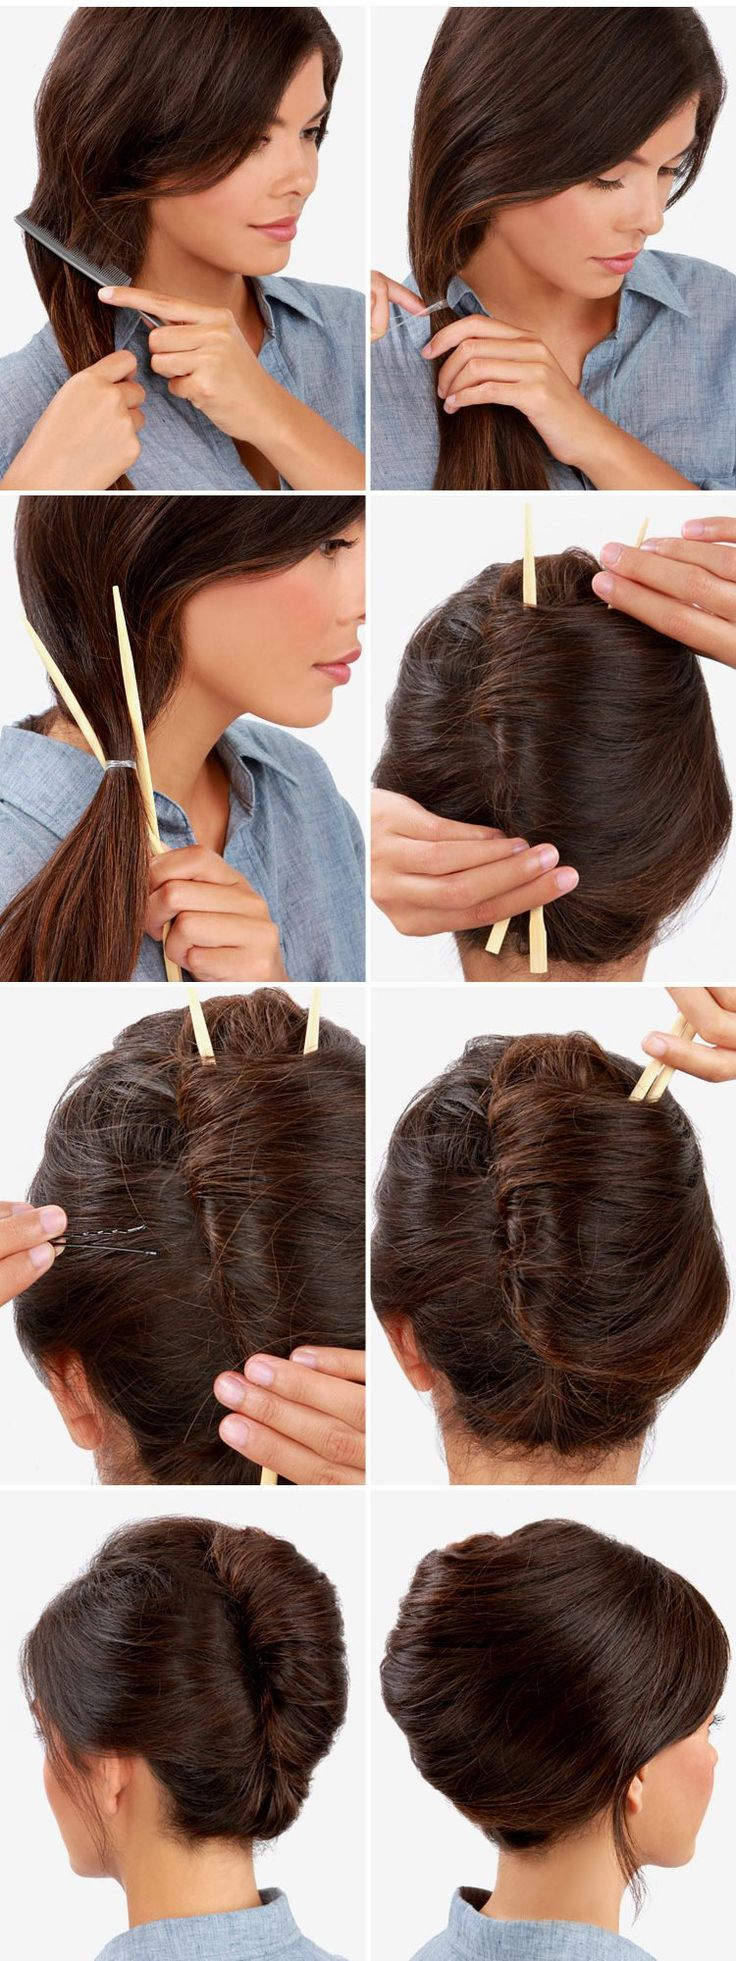 15 Hair Tutorials For All Summer Long